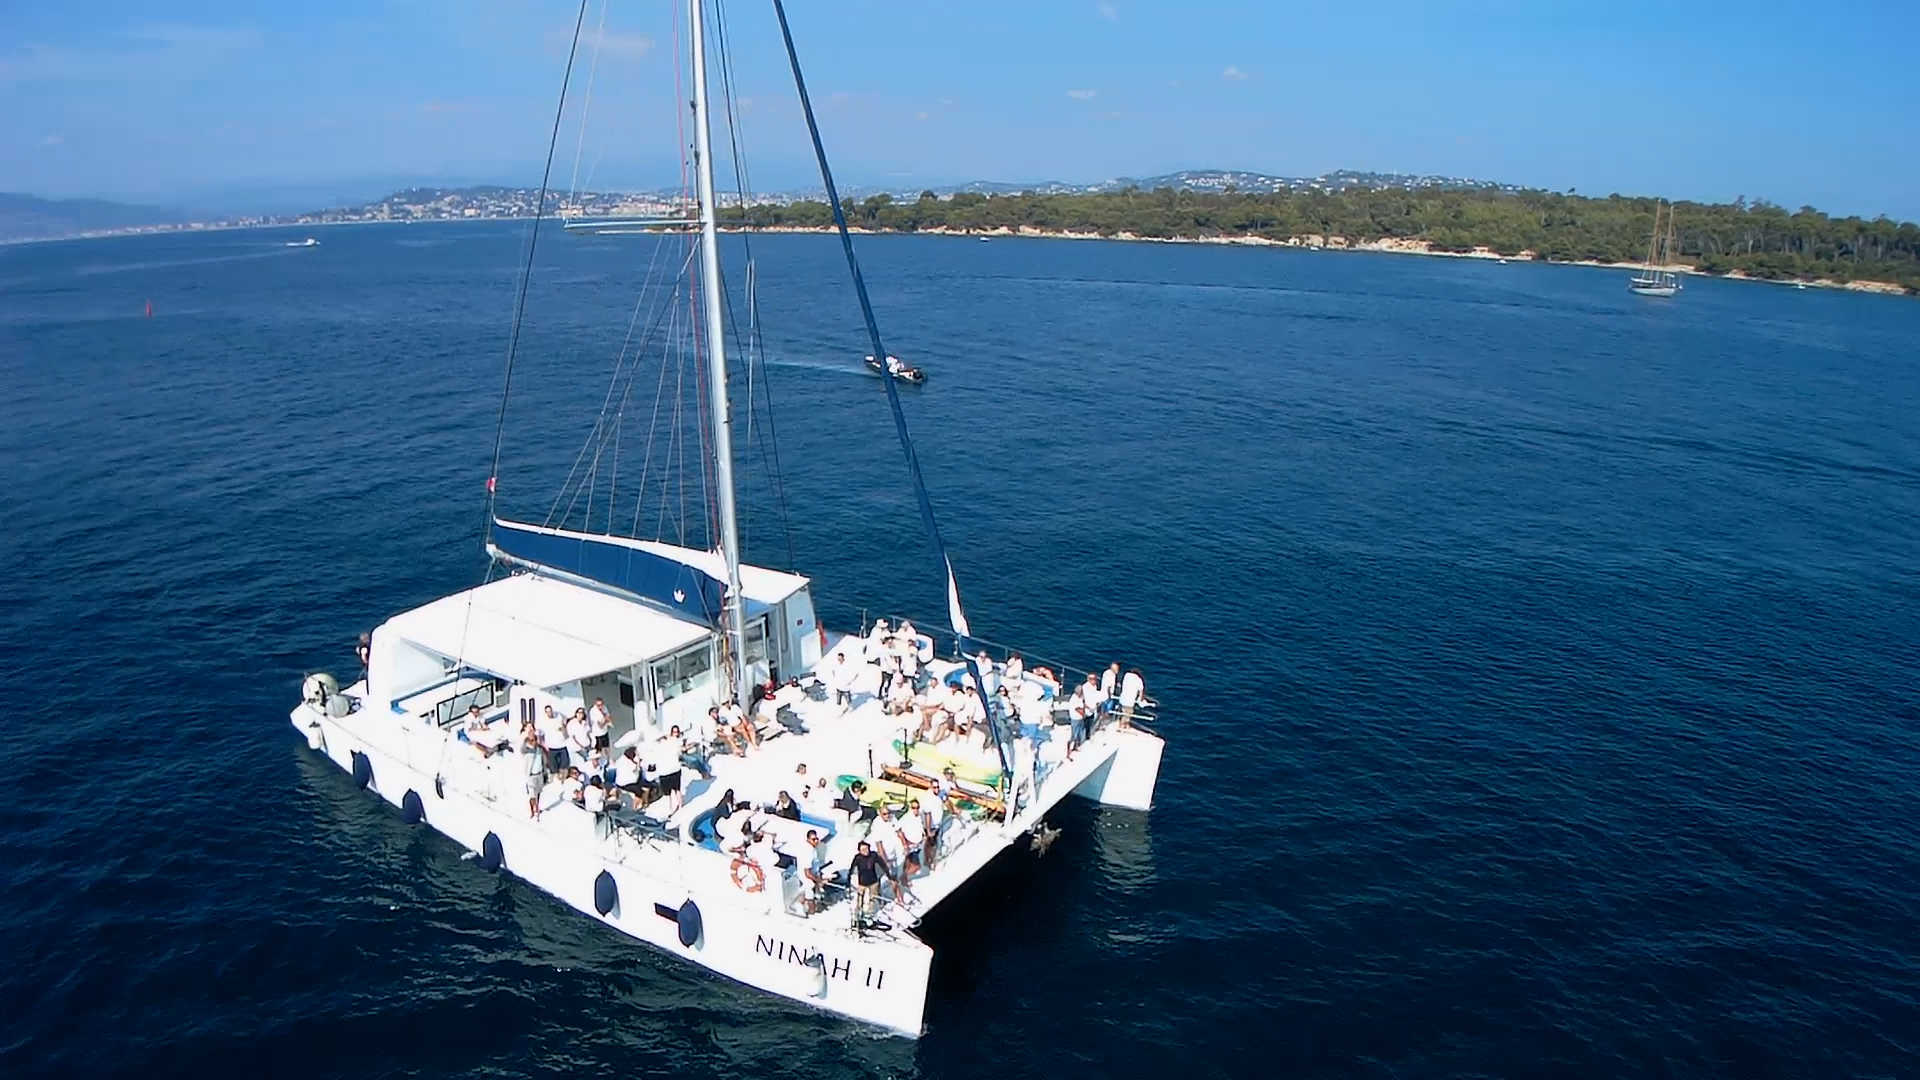 SAVE THE DATE ! Croisière à bord du catamaran Ninah II